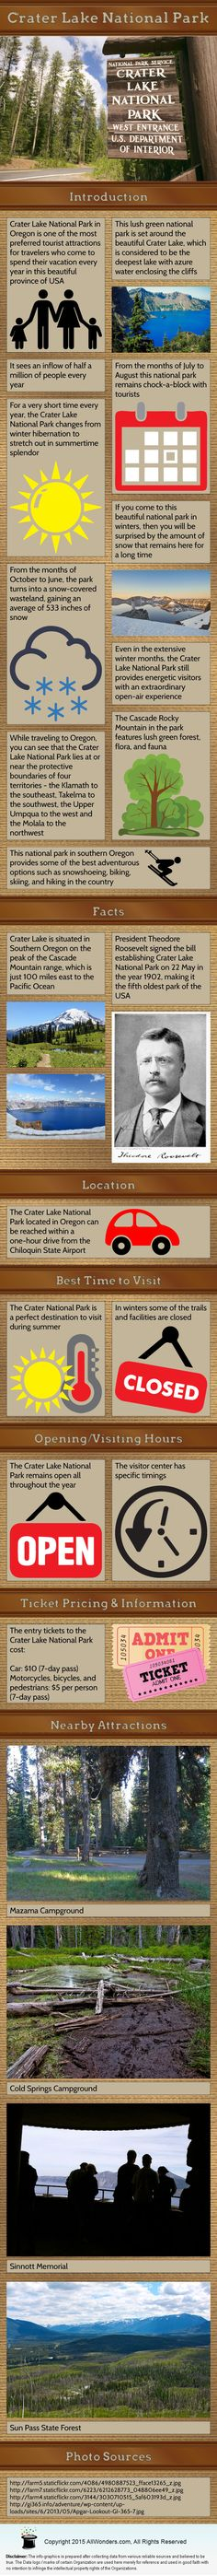 Crater Lake National Park Infographic showing Facts and Information about the national park in Oregon, US. Know about its Facts, Best time to visit, nearby attractions and more.